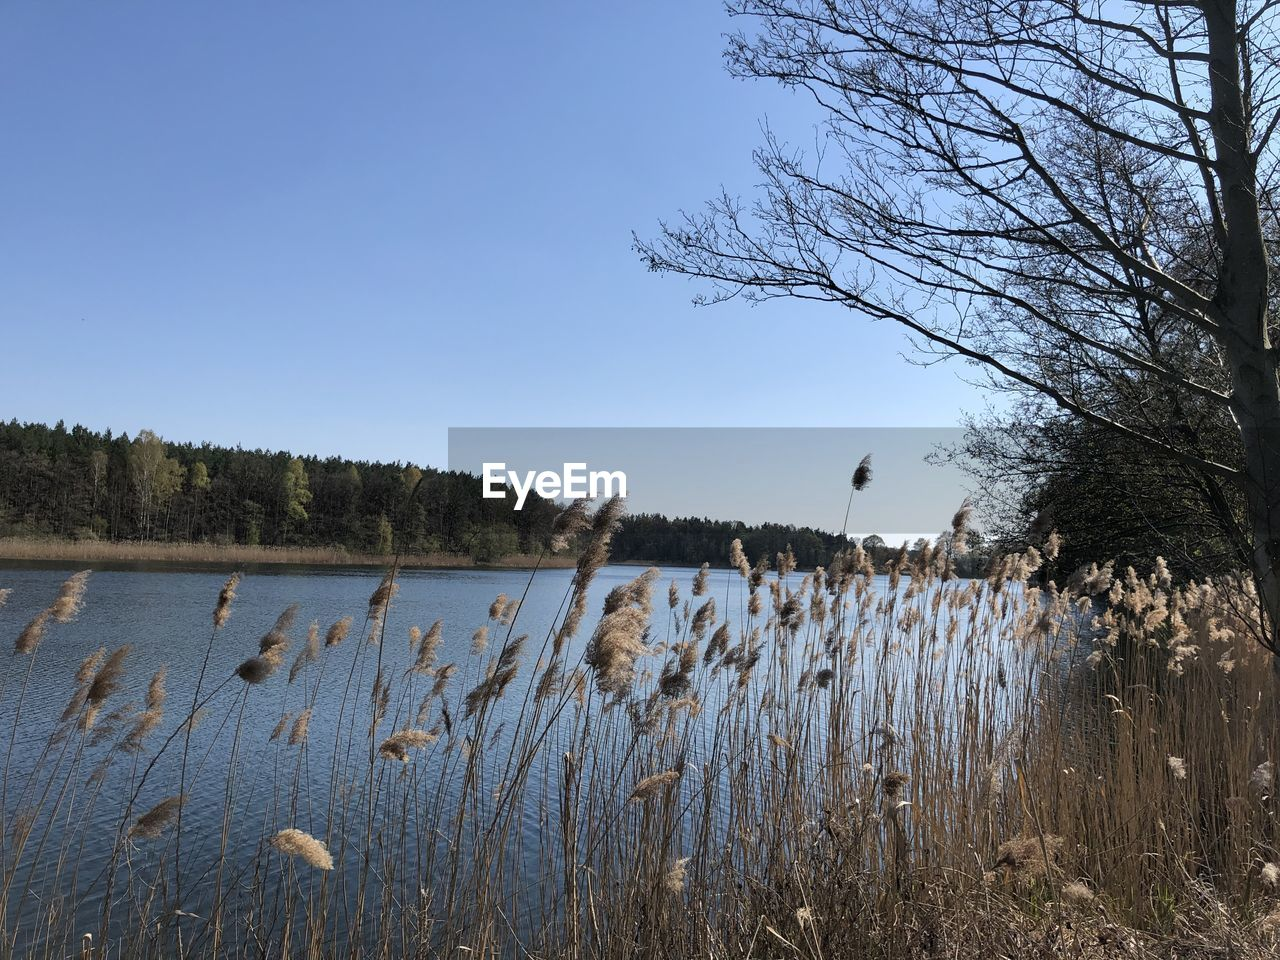 water, plant, sky, tree, tranquility, scenics - nature, tranquil scene, lake, growth, beauty in nature, nature, no people, day, non-urban scene, land, clear sky, landscape, grass, outdoors